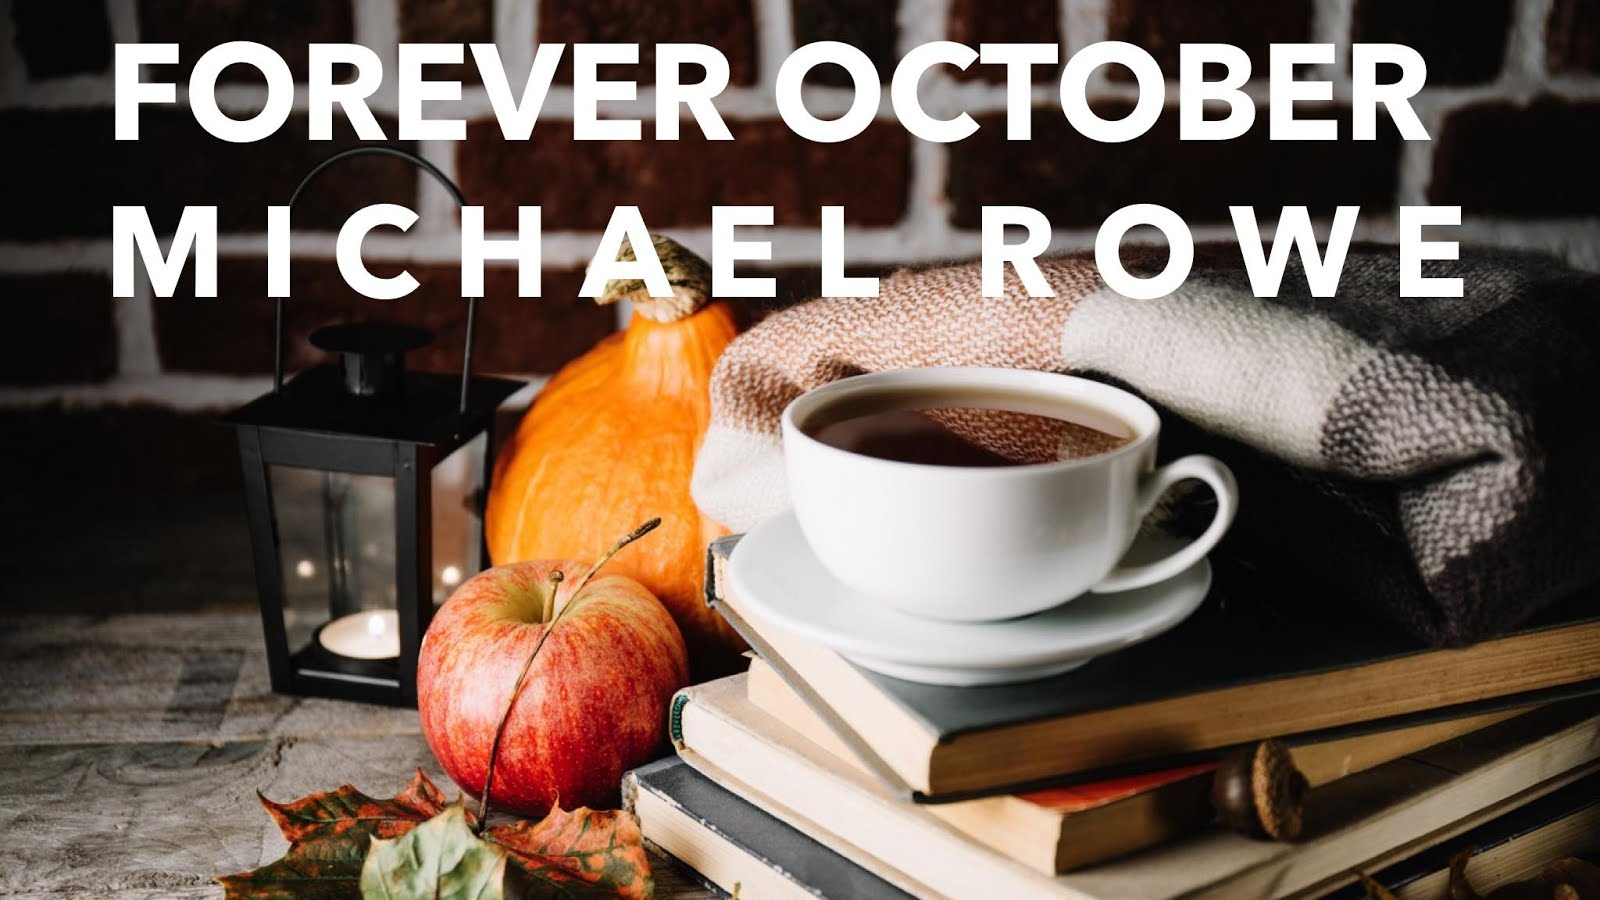 Forever October by Michael Rowe